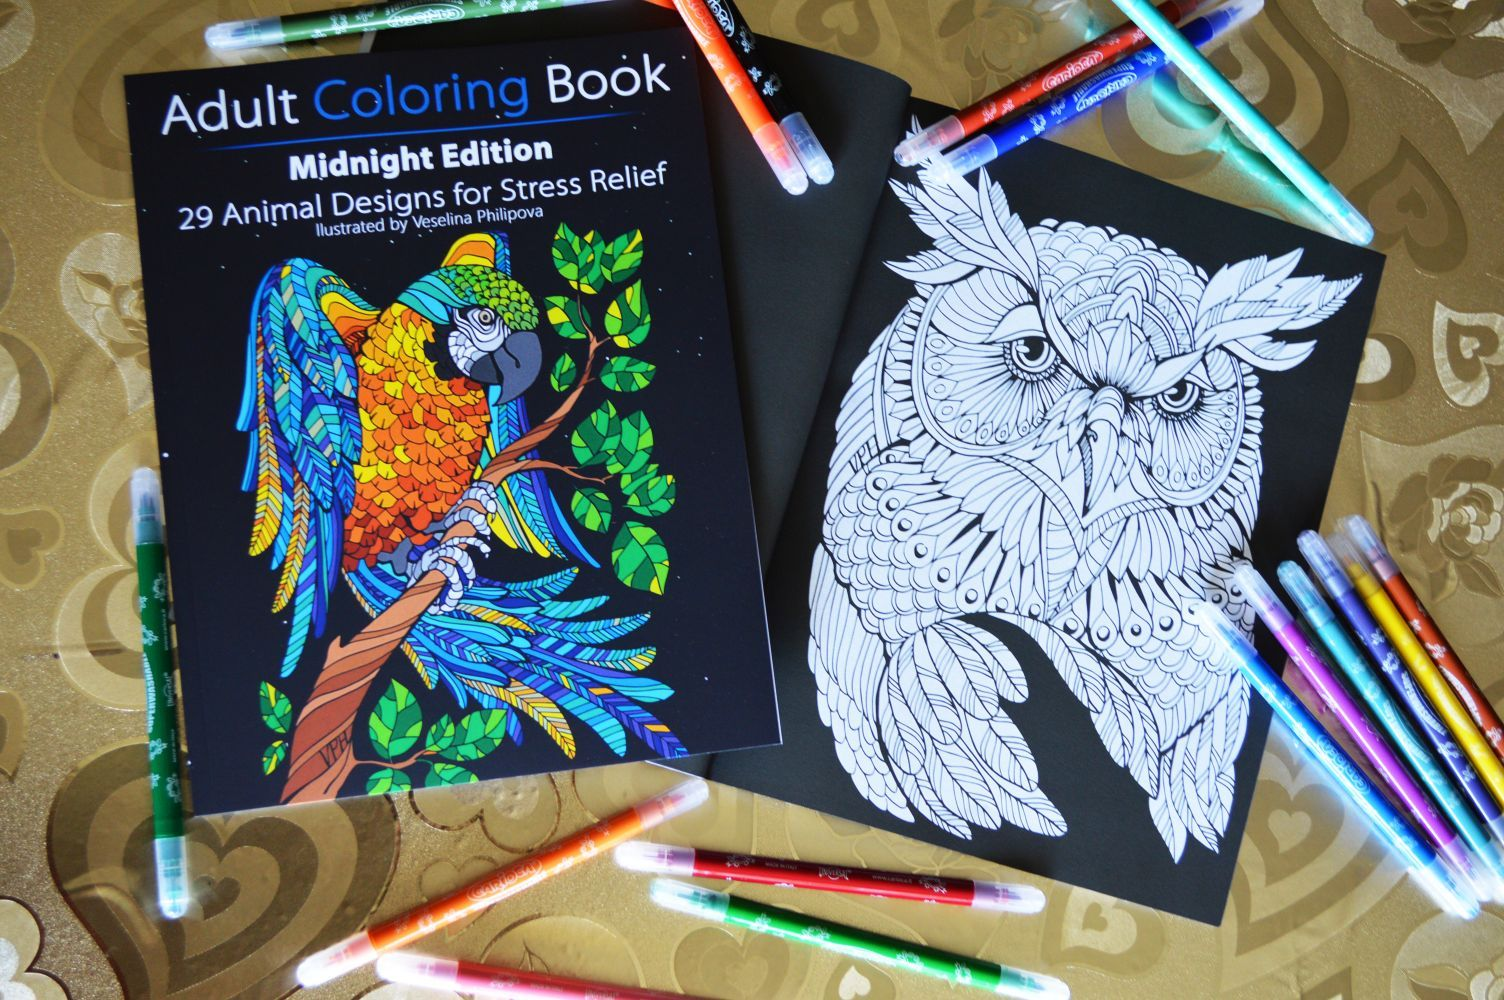 That Coloring Book Will Make You Relax With Its Awesome Animal Designs